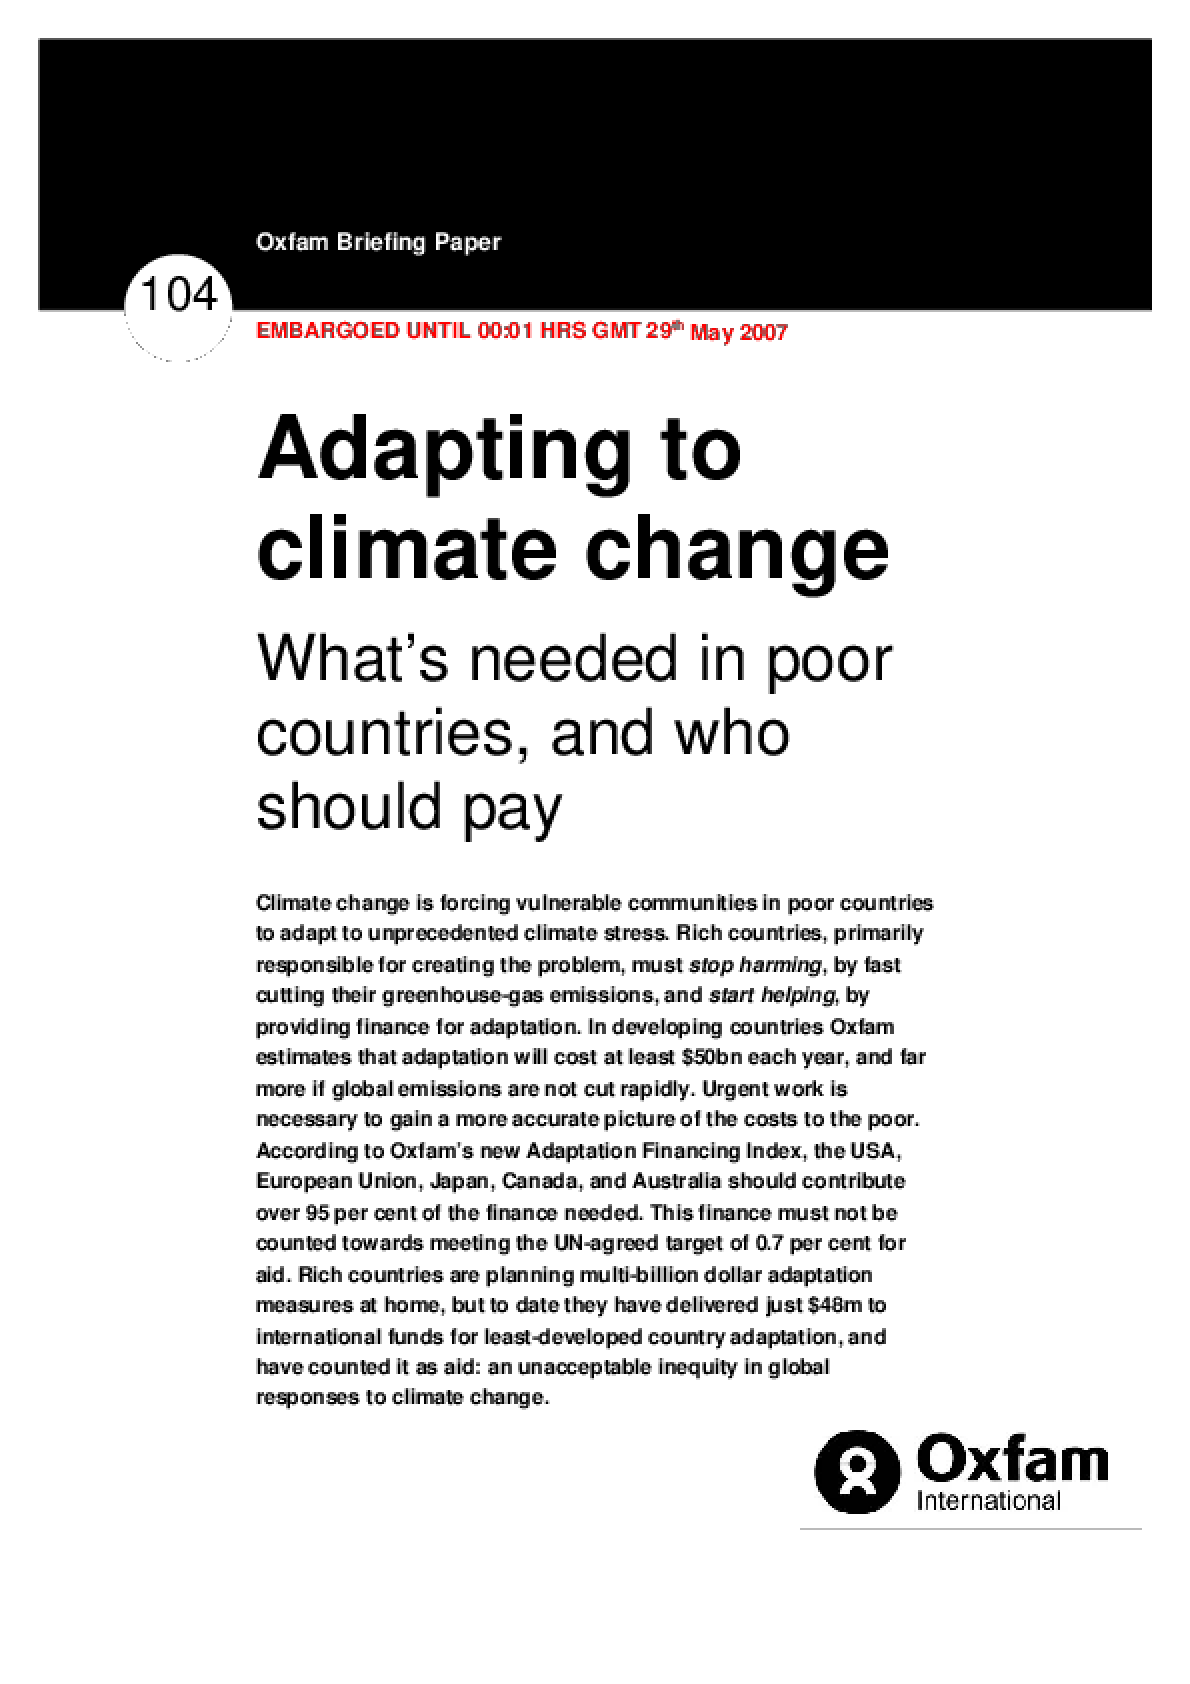 Adapting to Climate Change: What's needed in poor countries, and who should pay